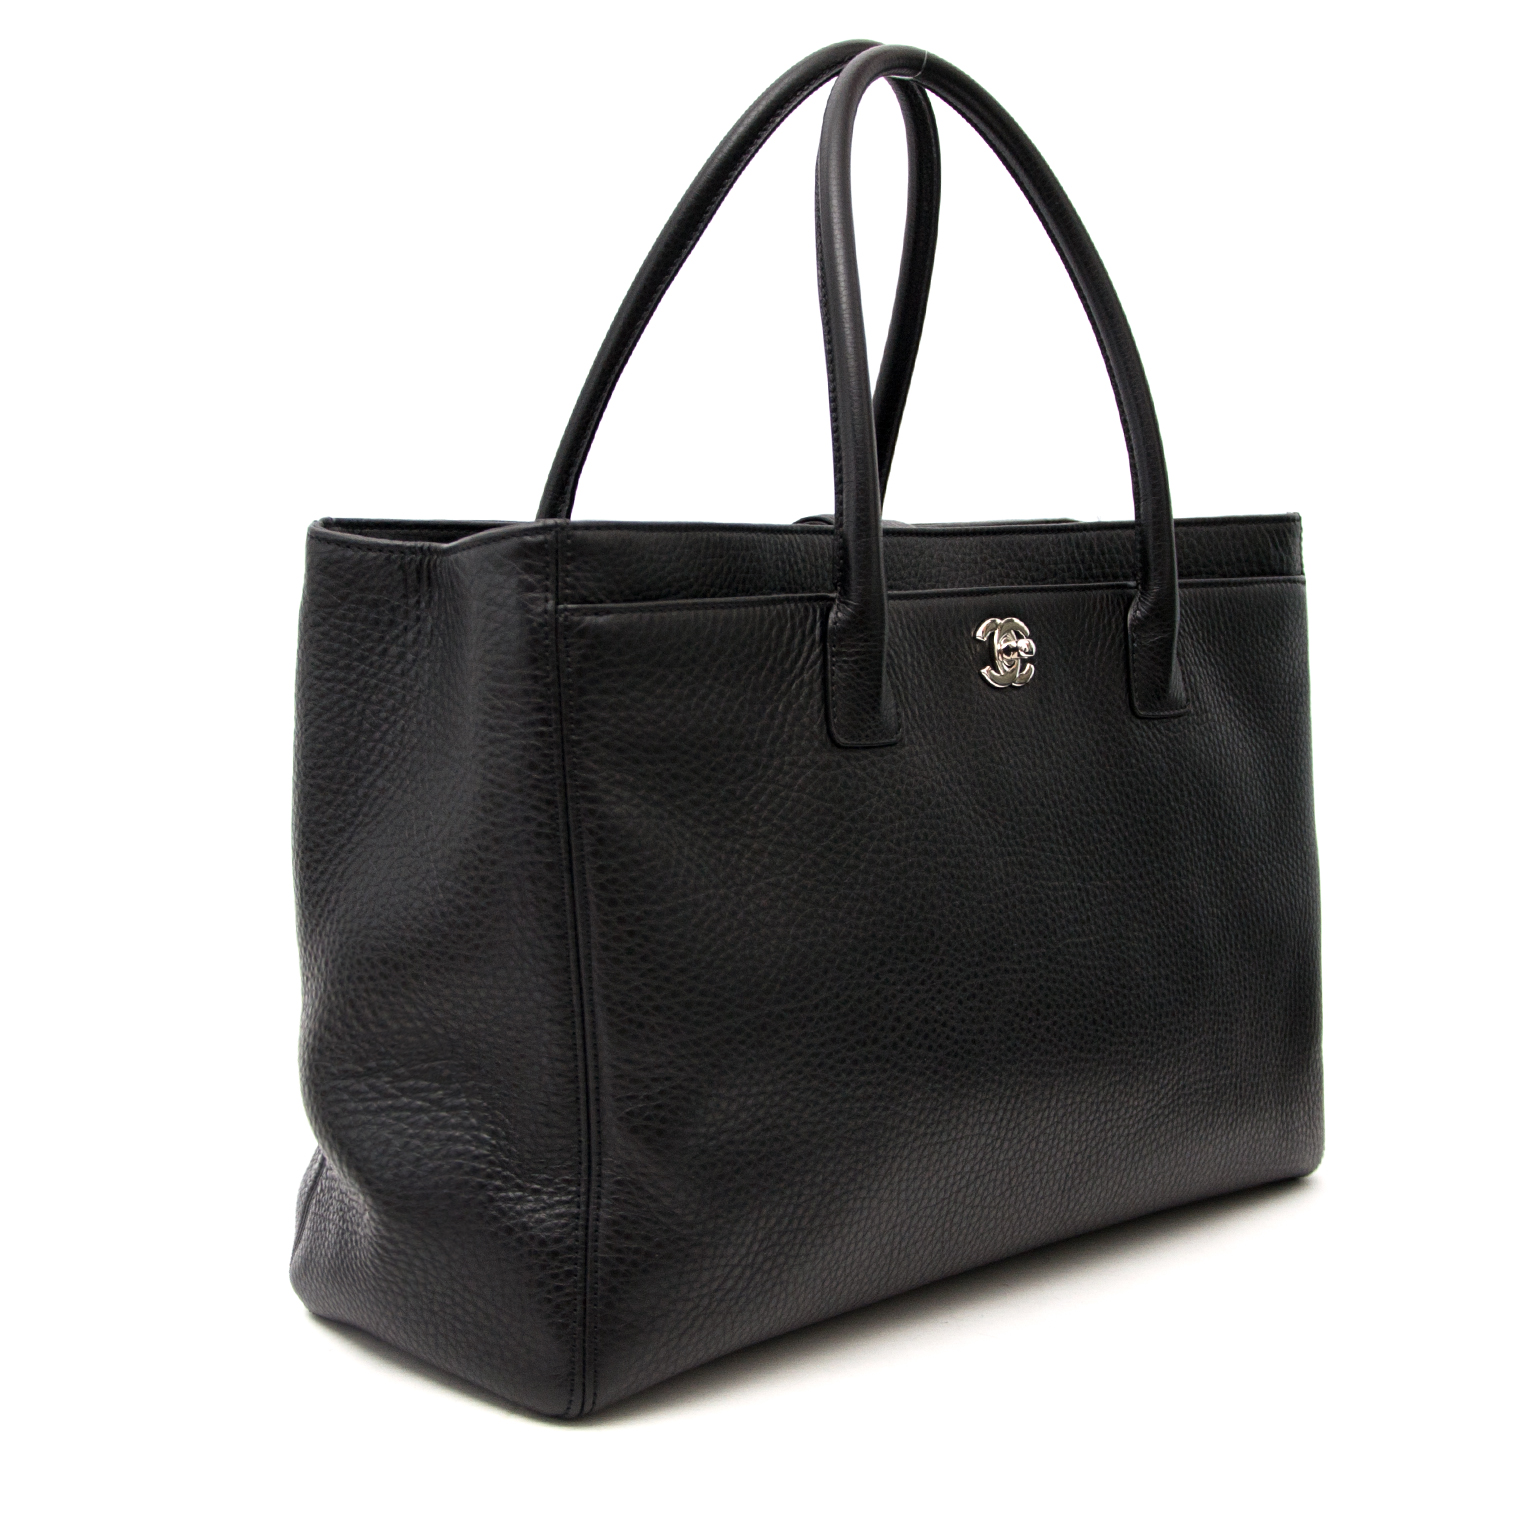 fc81b221d649 ... the Buy the it-bag Chanel Executive Cerf Tote Bag now, work or day to